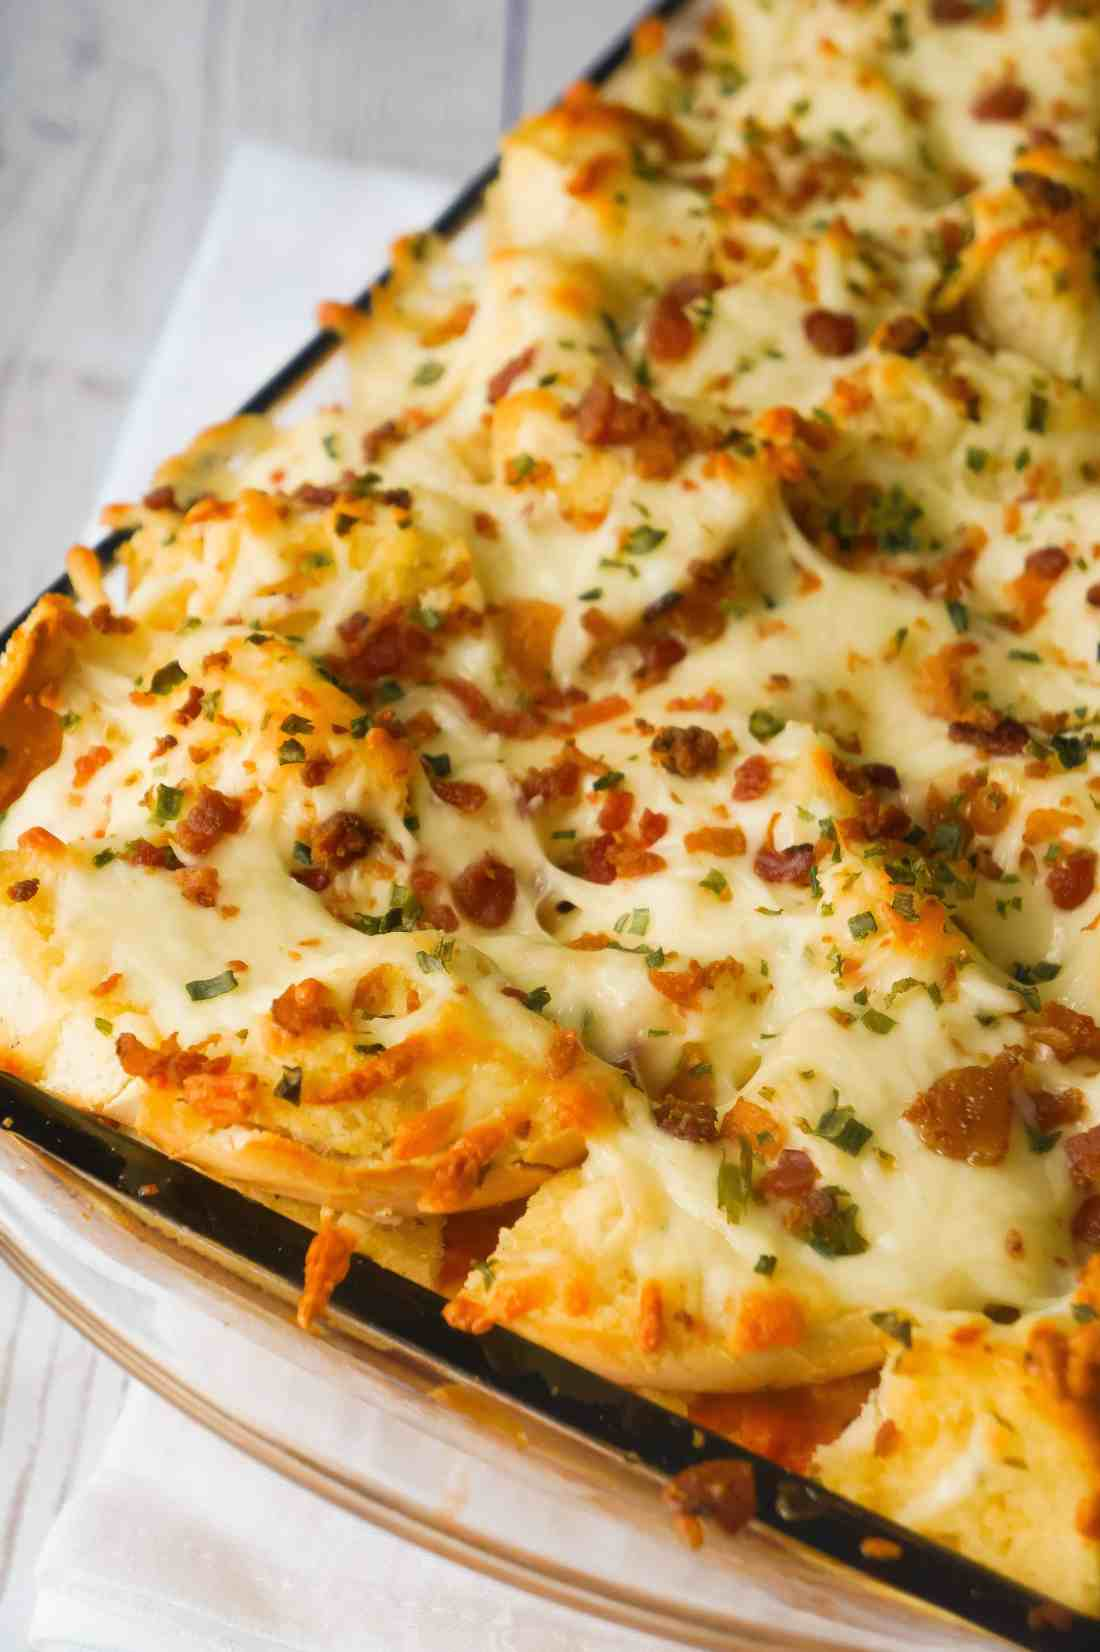 baked spaghetti and meatball casserole topped with garlic cheese bread